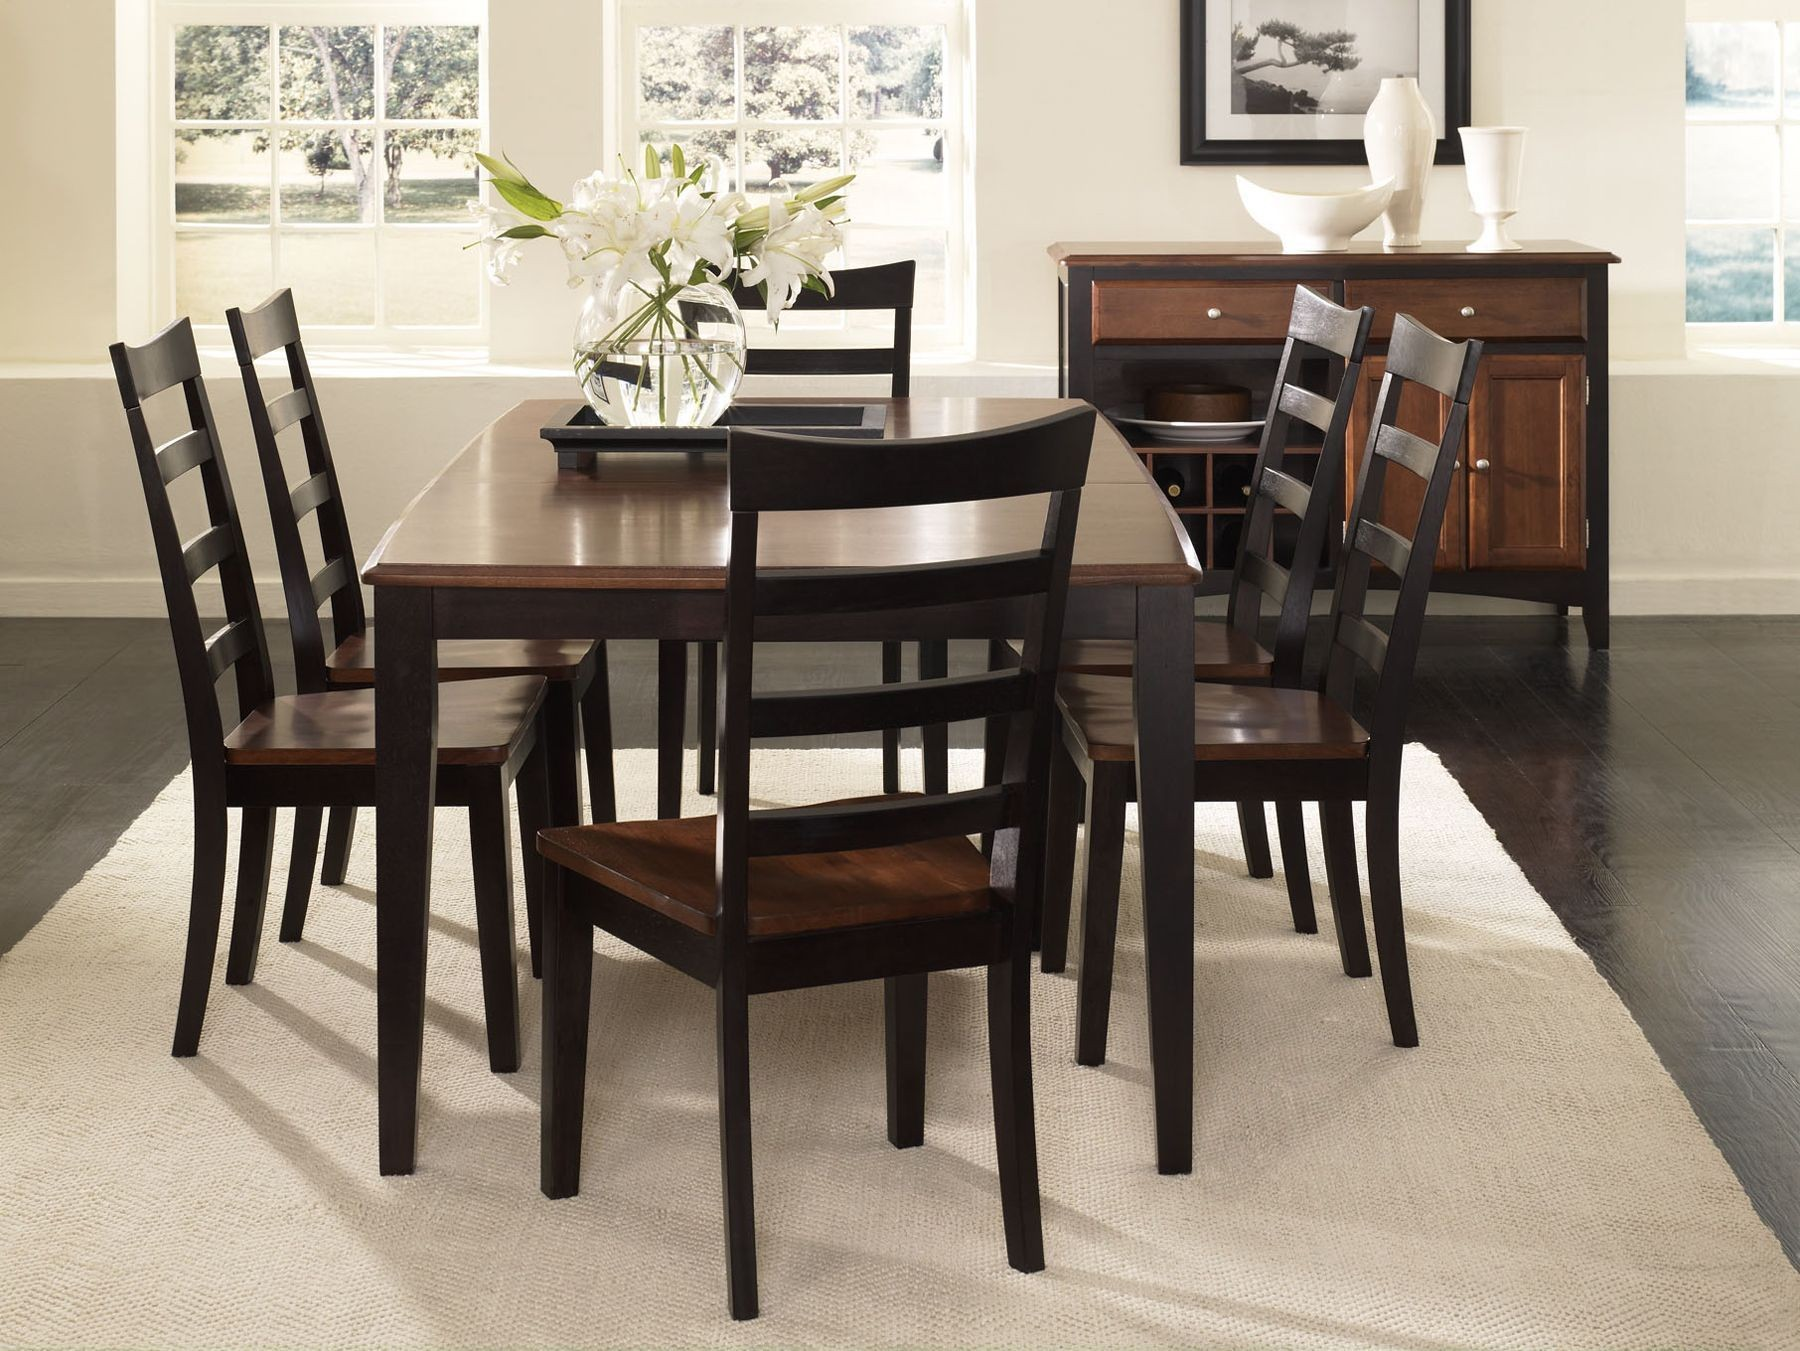 Bristol Point 78 Oak Espresso Extendable Rectangular Dining Room Set B